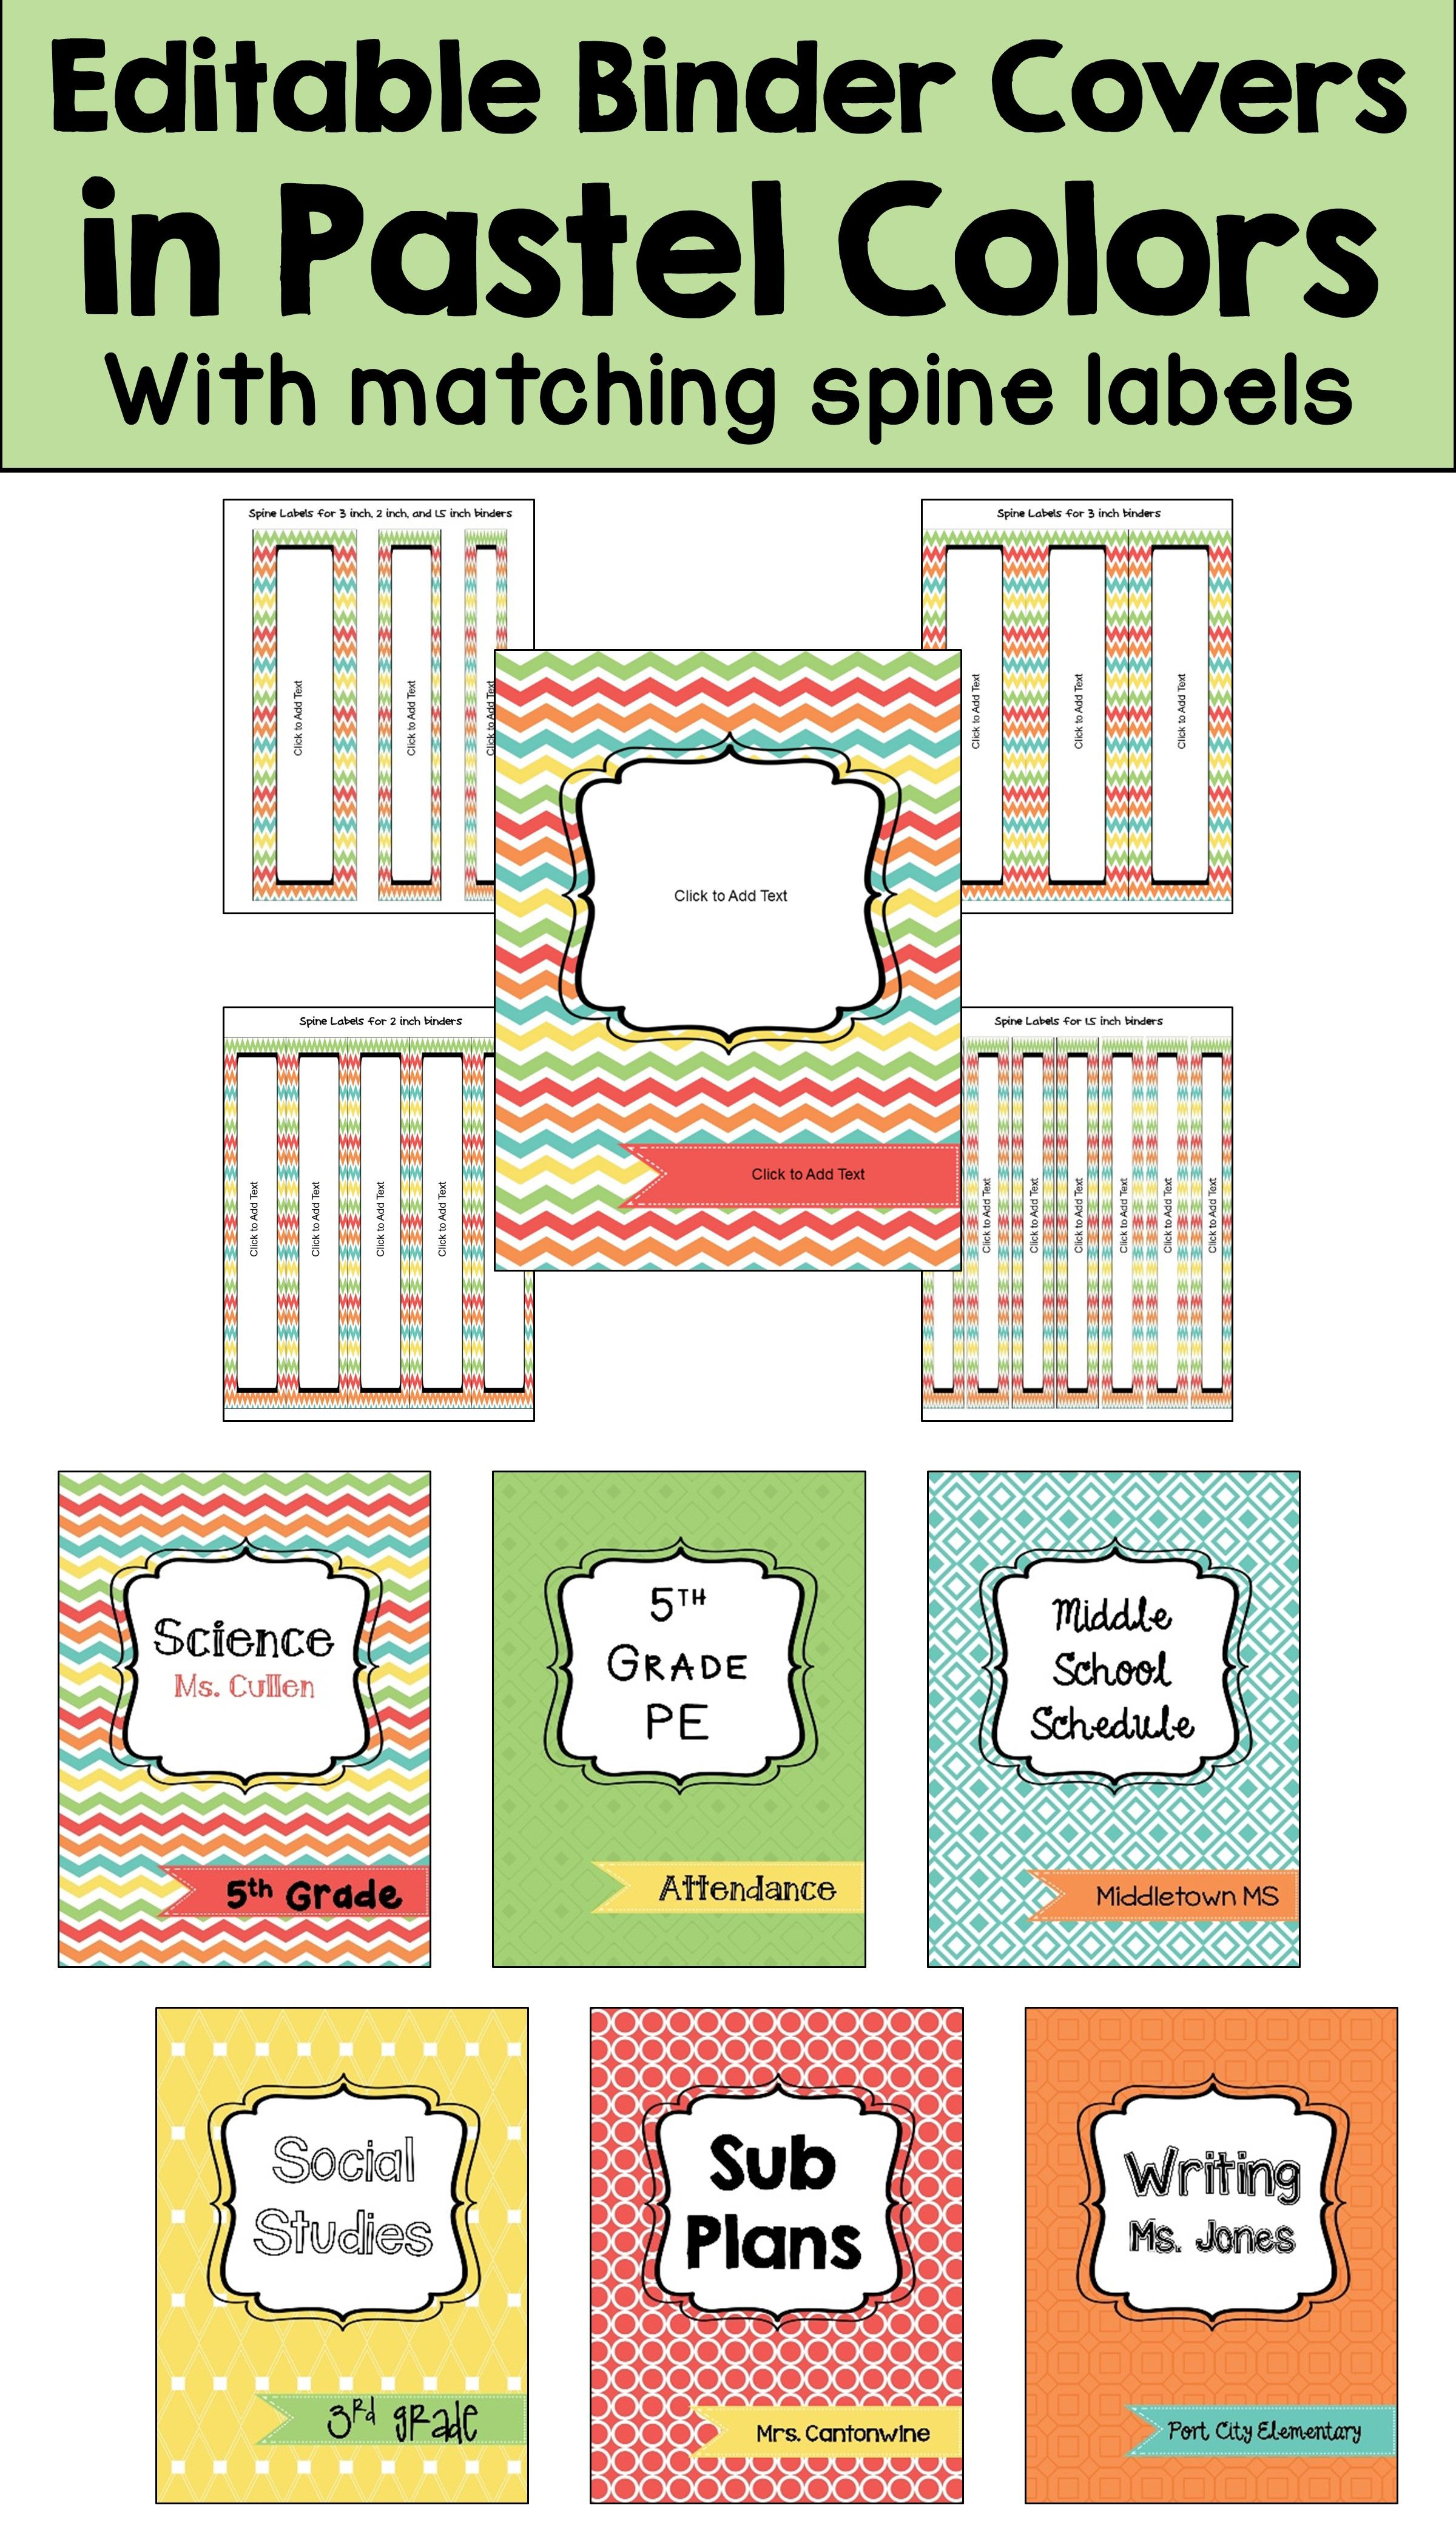 Editable Binder Covers And Spines In Pastel